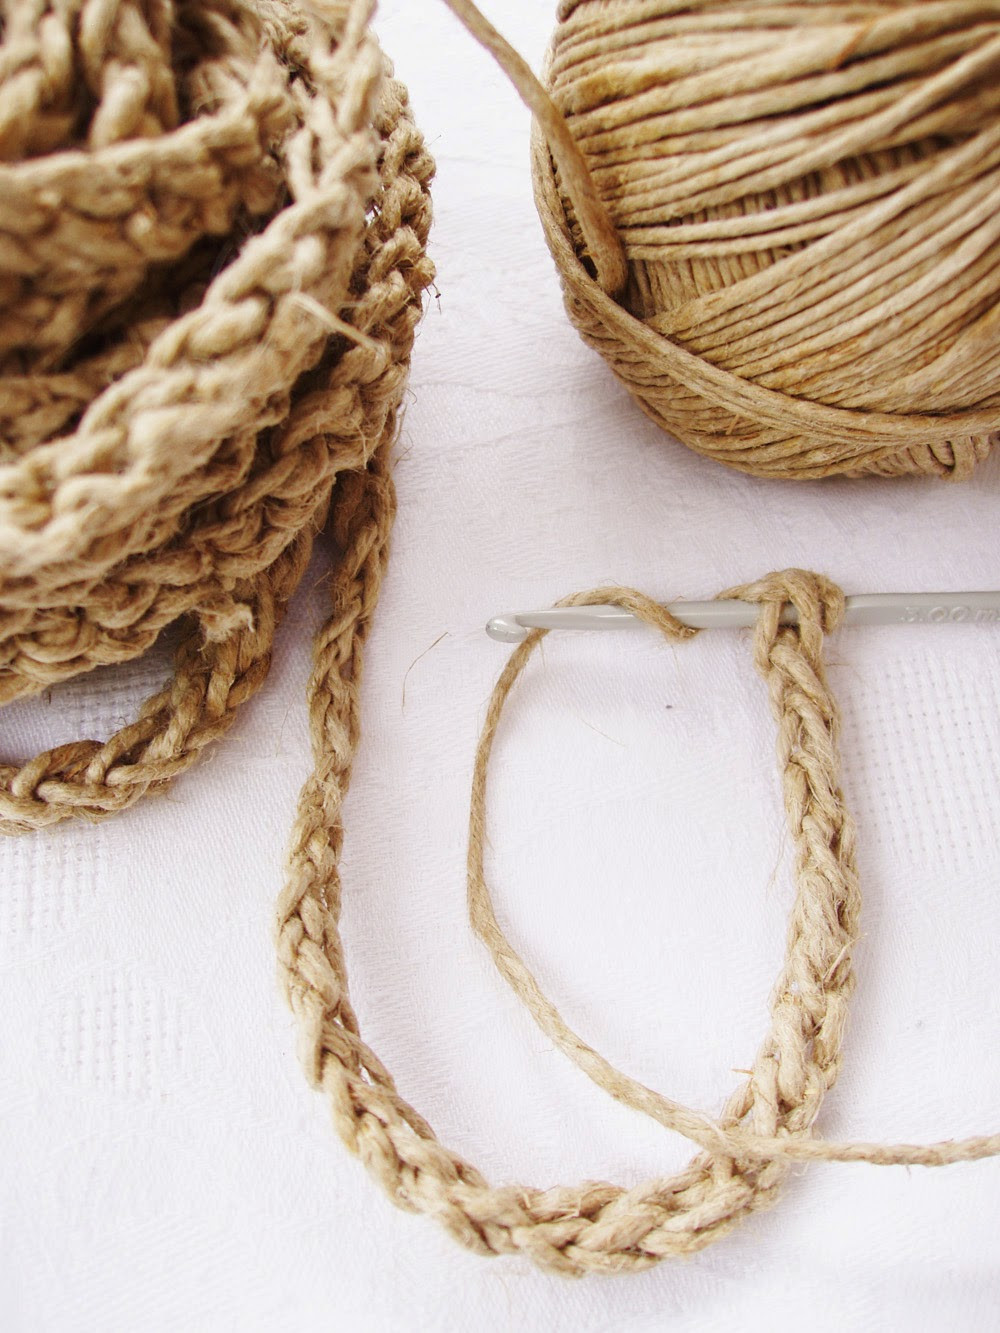 Inspirational How to Make Rope for Cord soles Crochet Cords Of Attractive 49 Ideas Crochet Cords